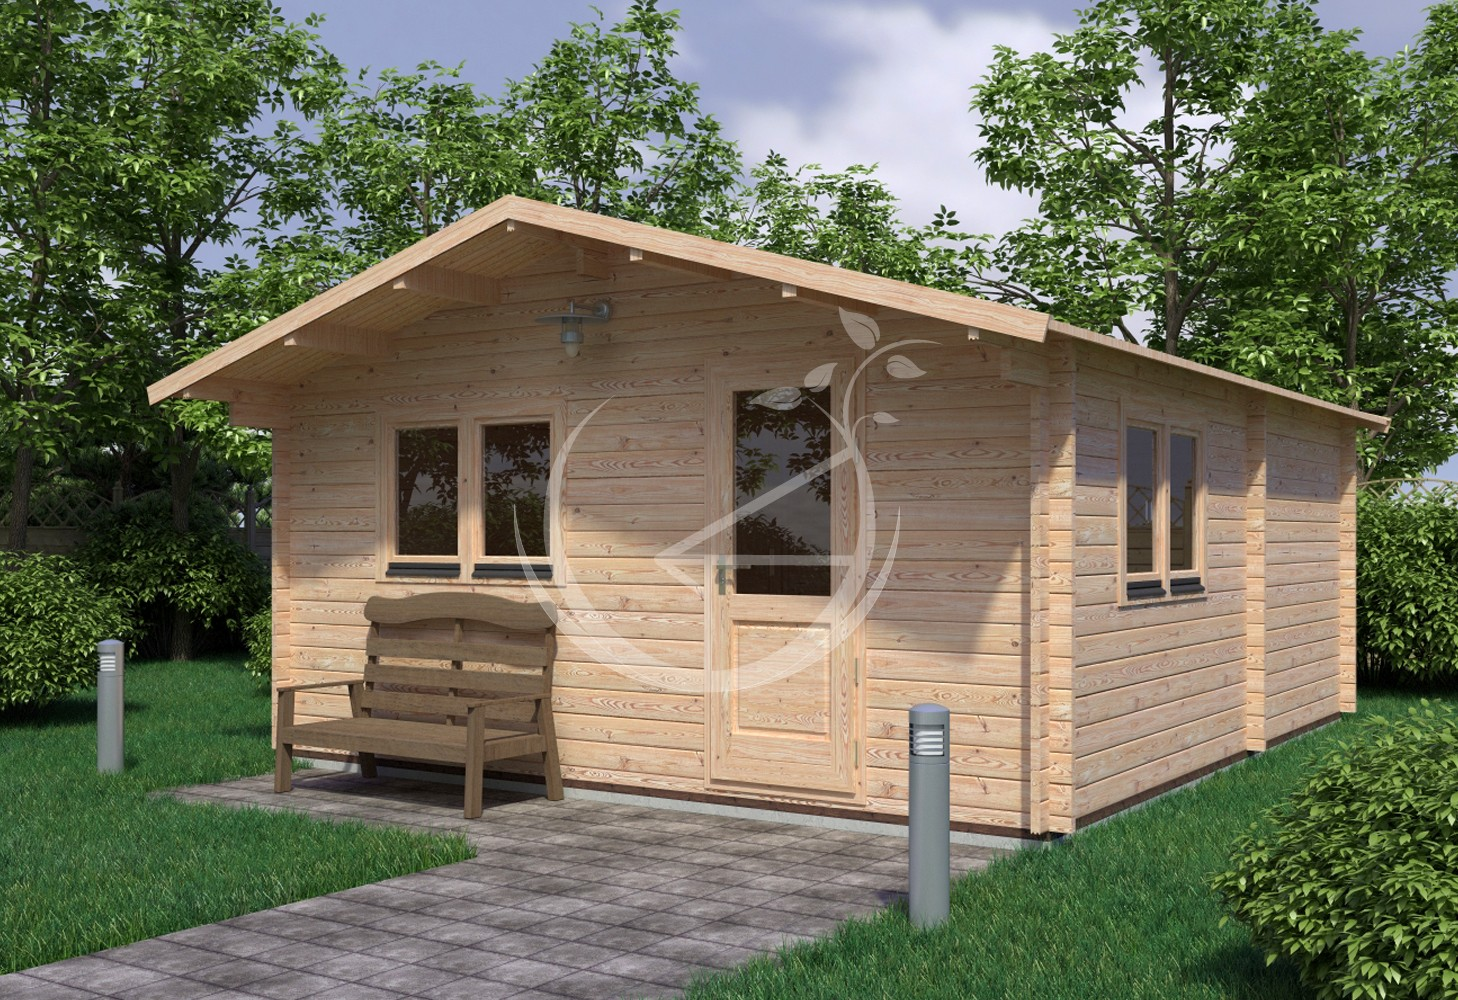 ... One Bed Log Cabin Ecohome Log Cabins Tullamore. Eko 5x5,7